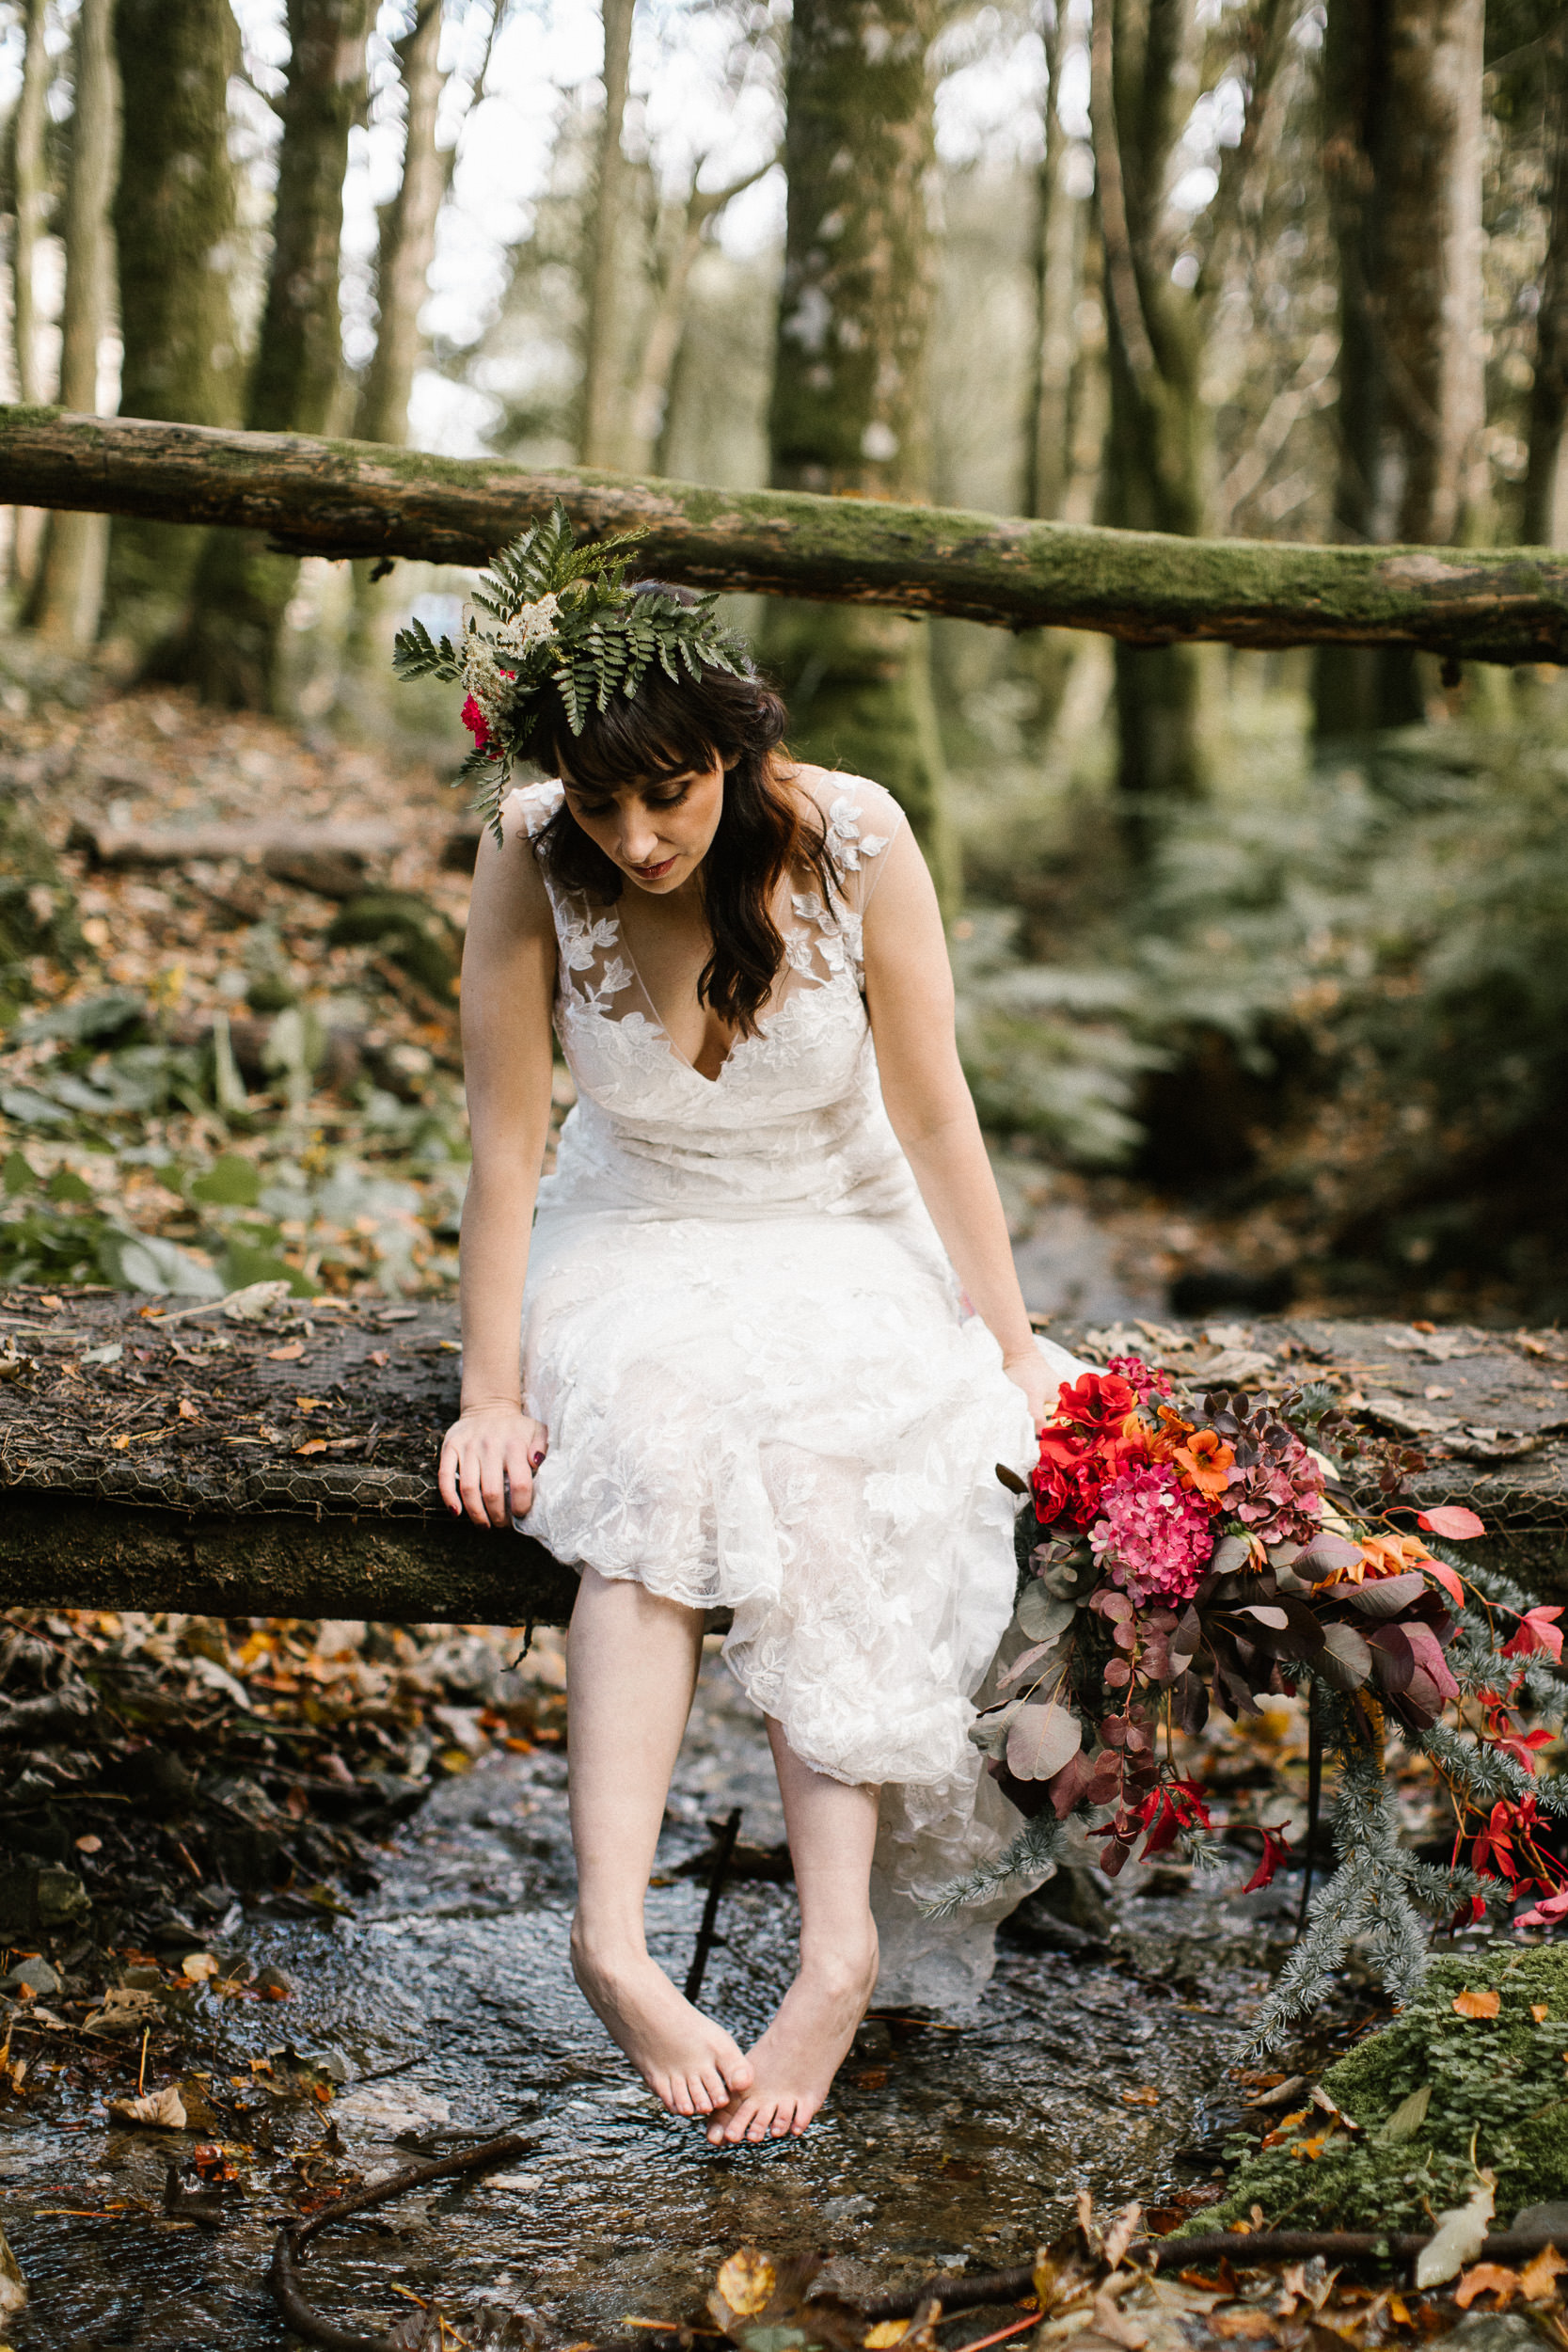 clairebyrnephotography-styled-shoot-huntingbrook-gardens-inspiration-weddings-woods-forest-65.jpg